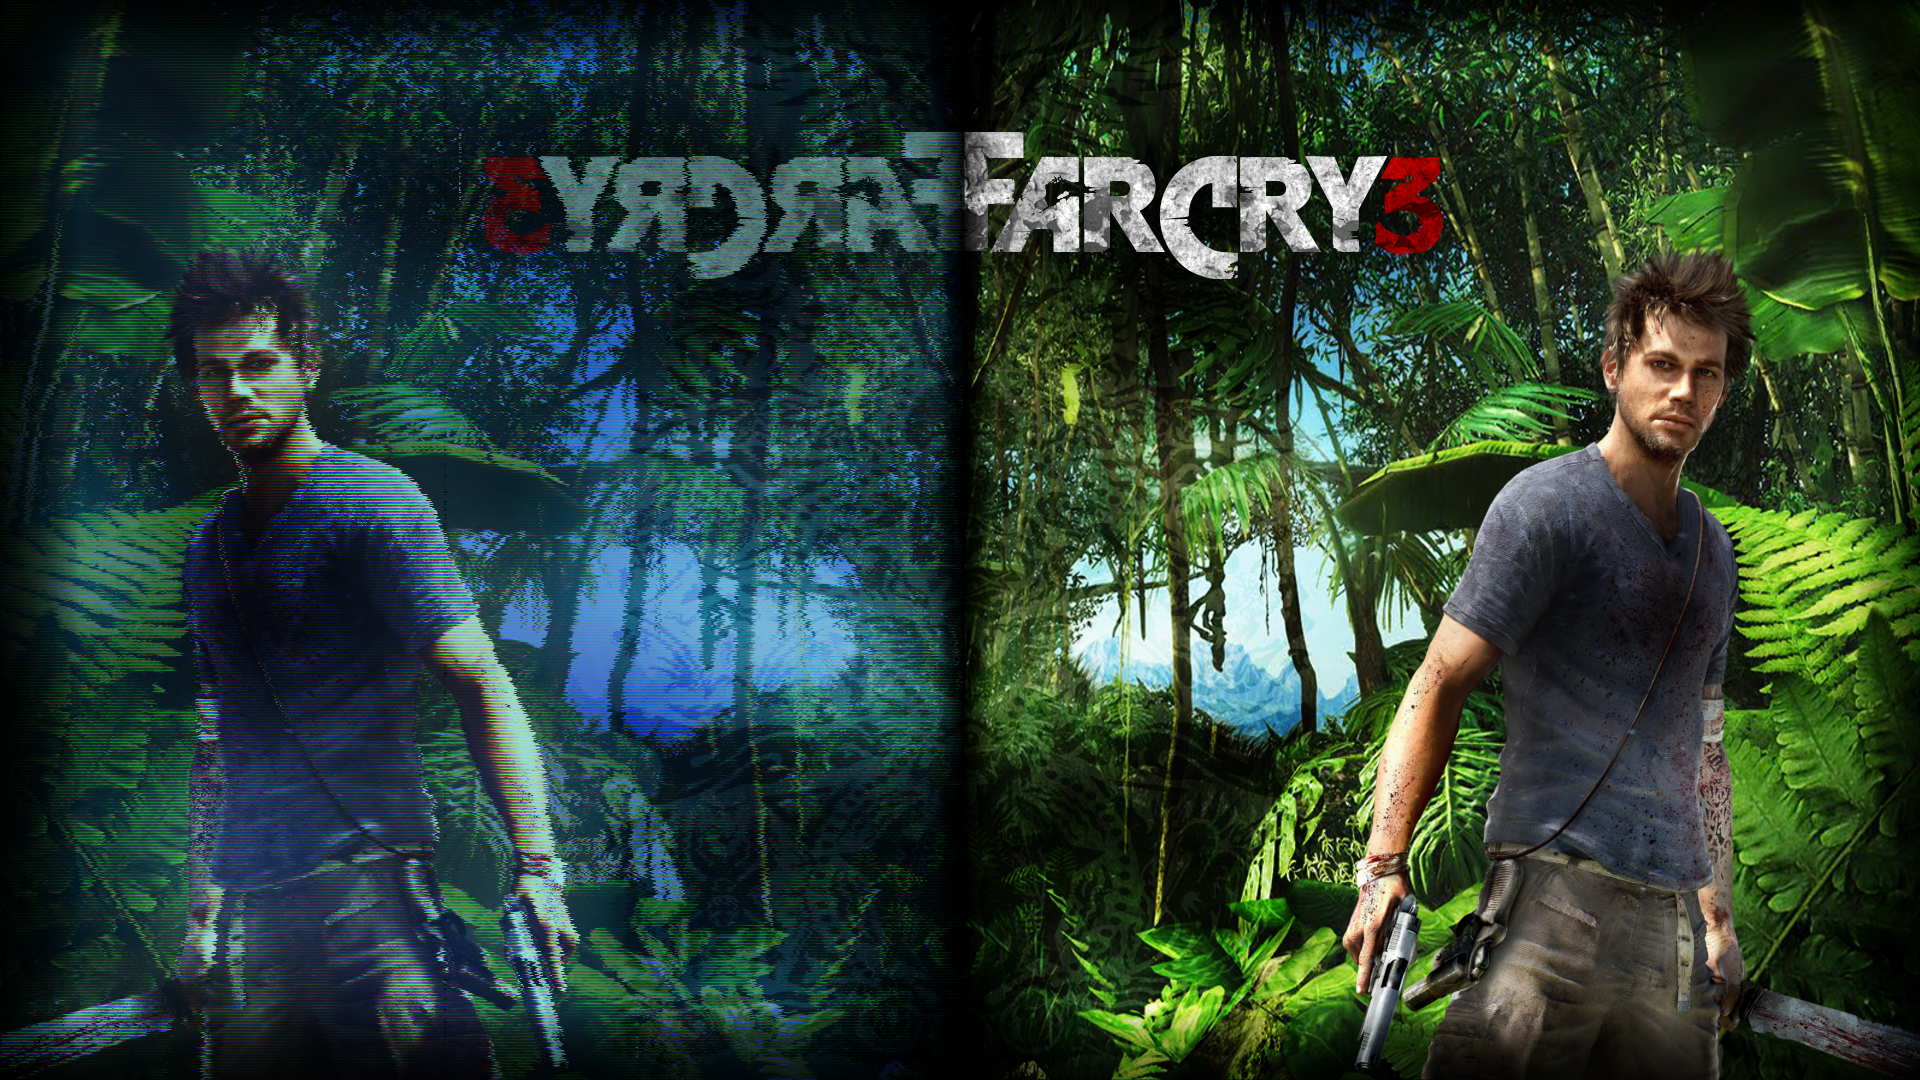 Made A Far Cry 3 Wallpaper Farcry